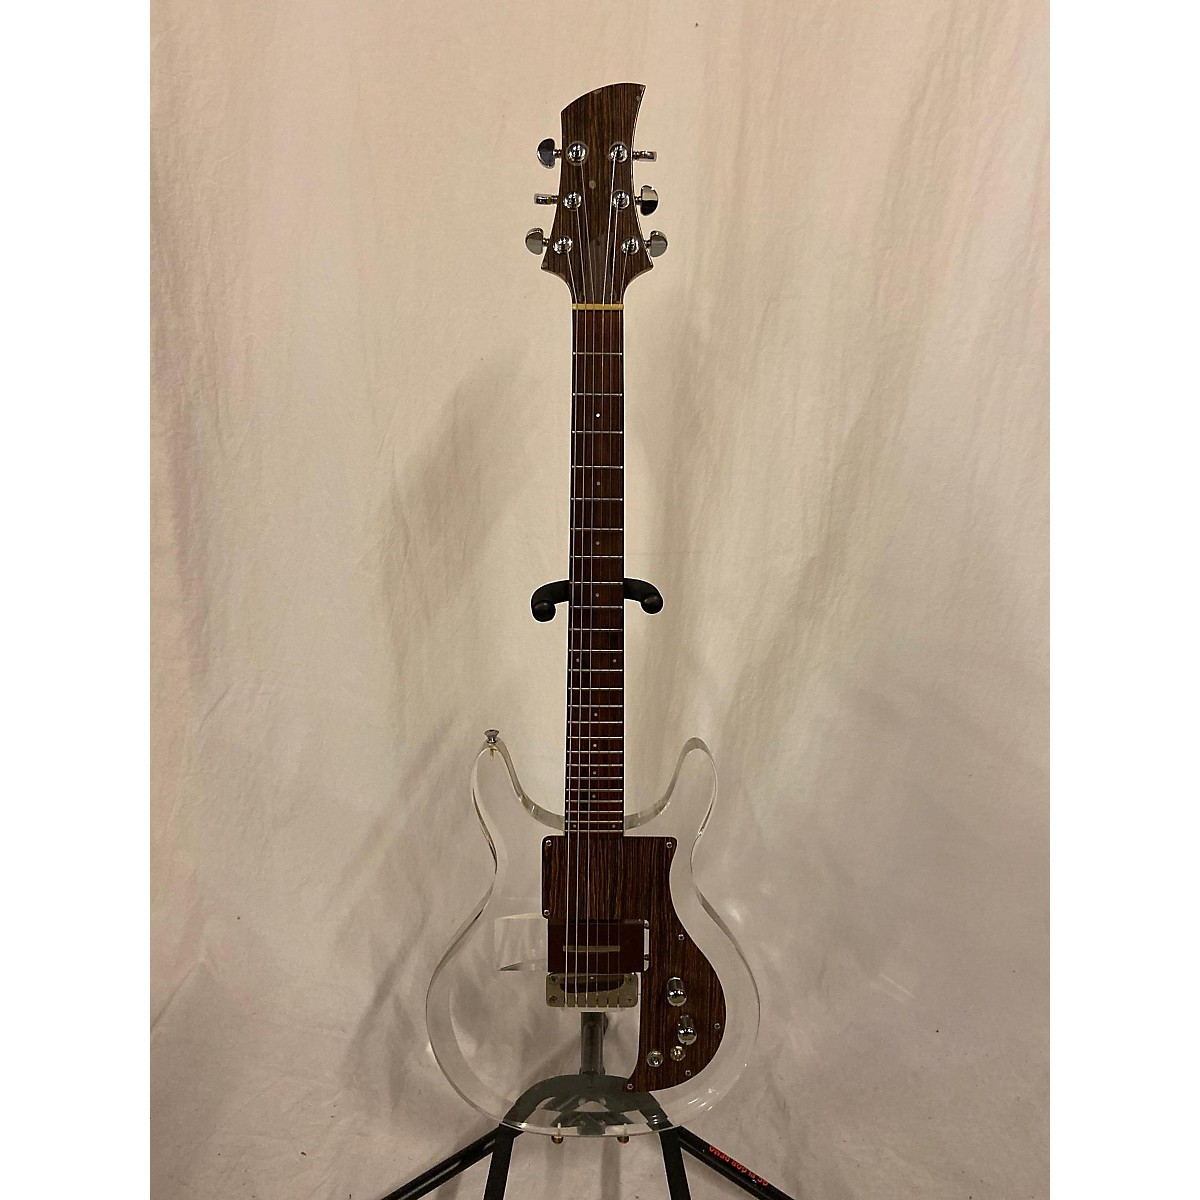 Electra 1970s Model 2246 Lucite Solid Body Electric Guitar